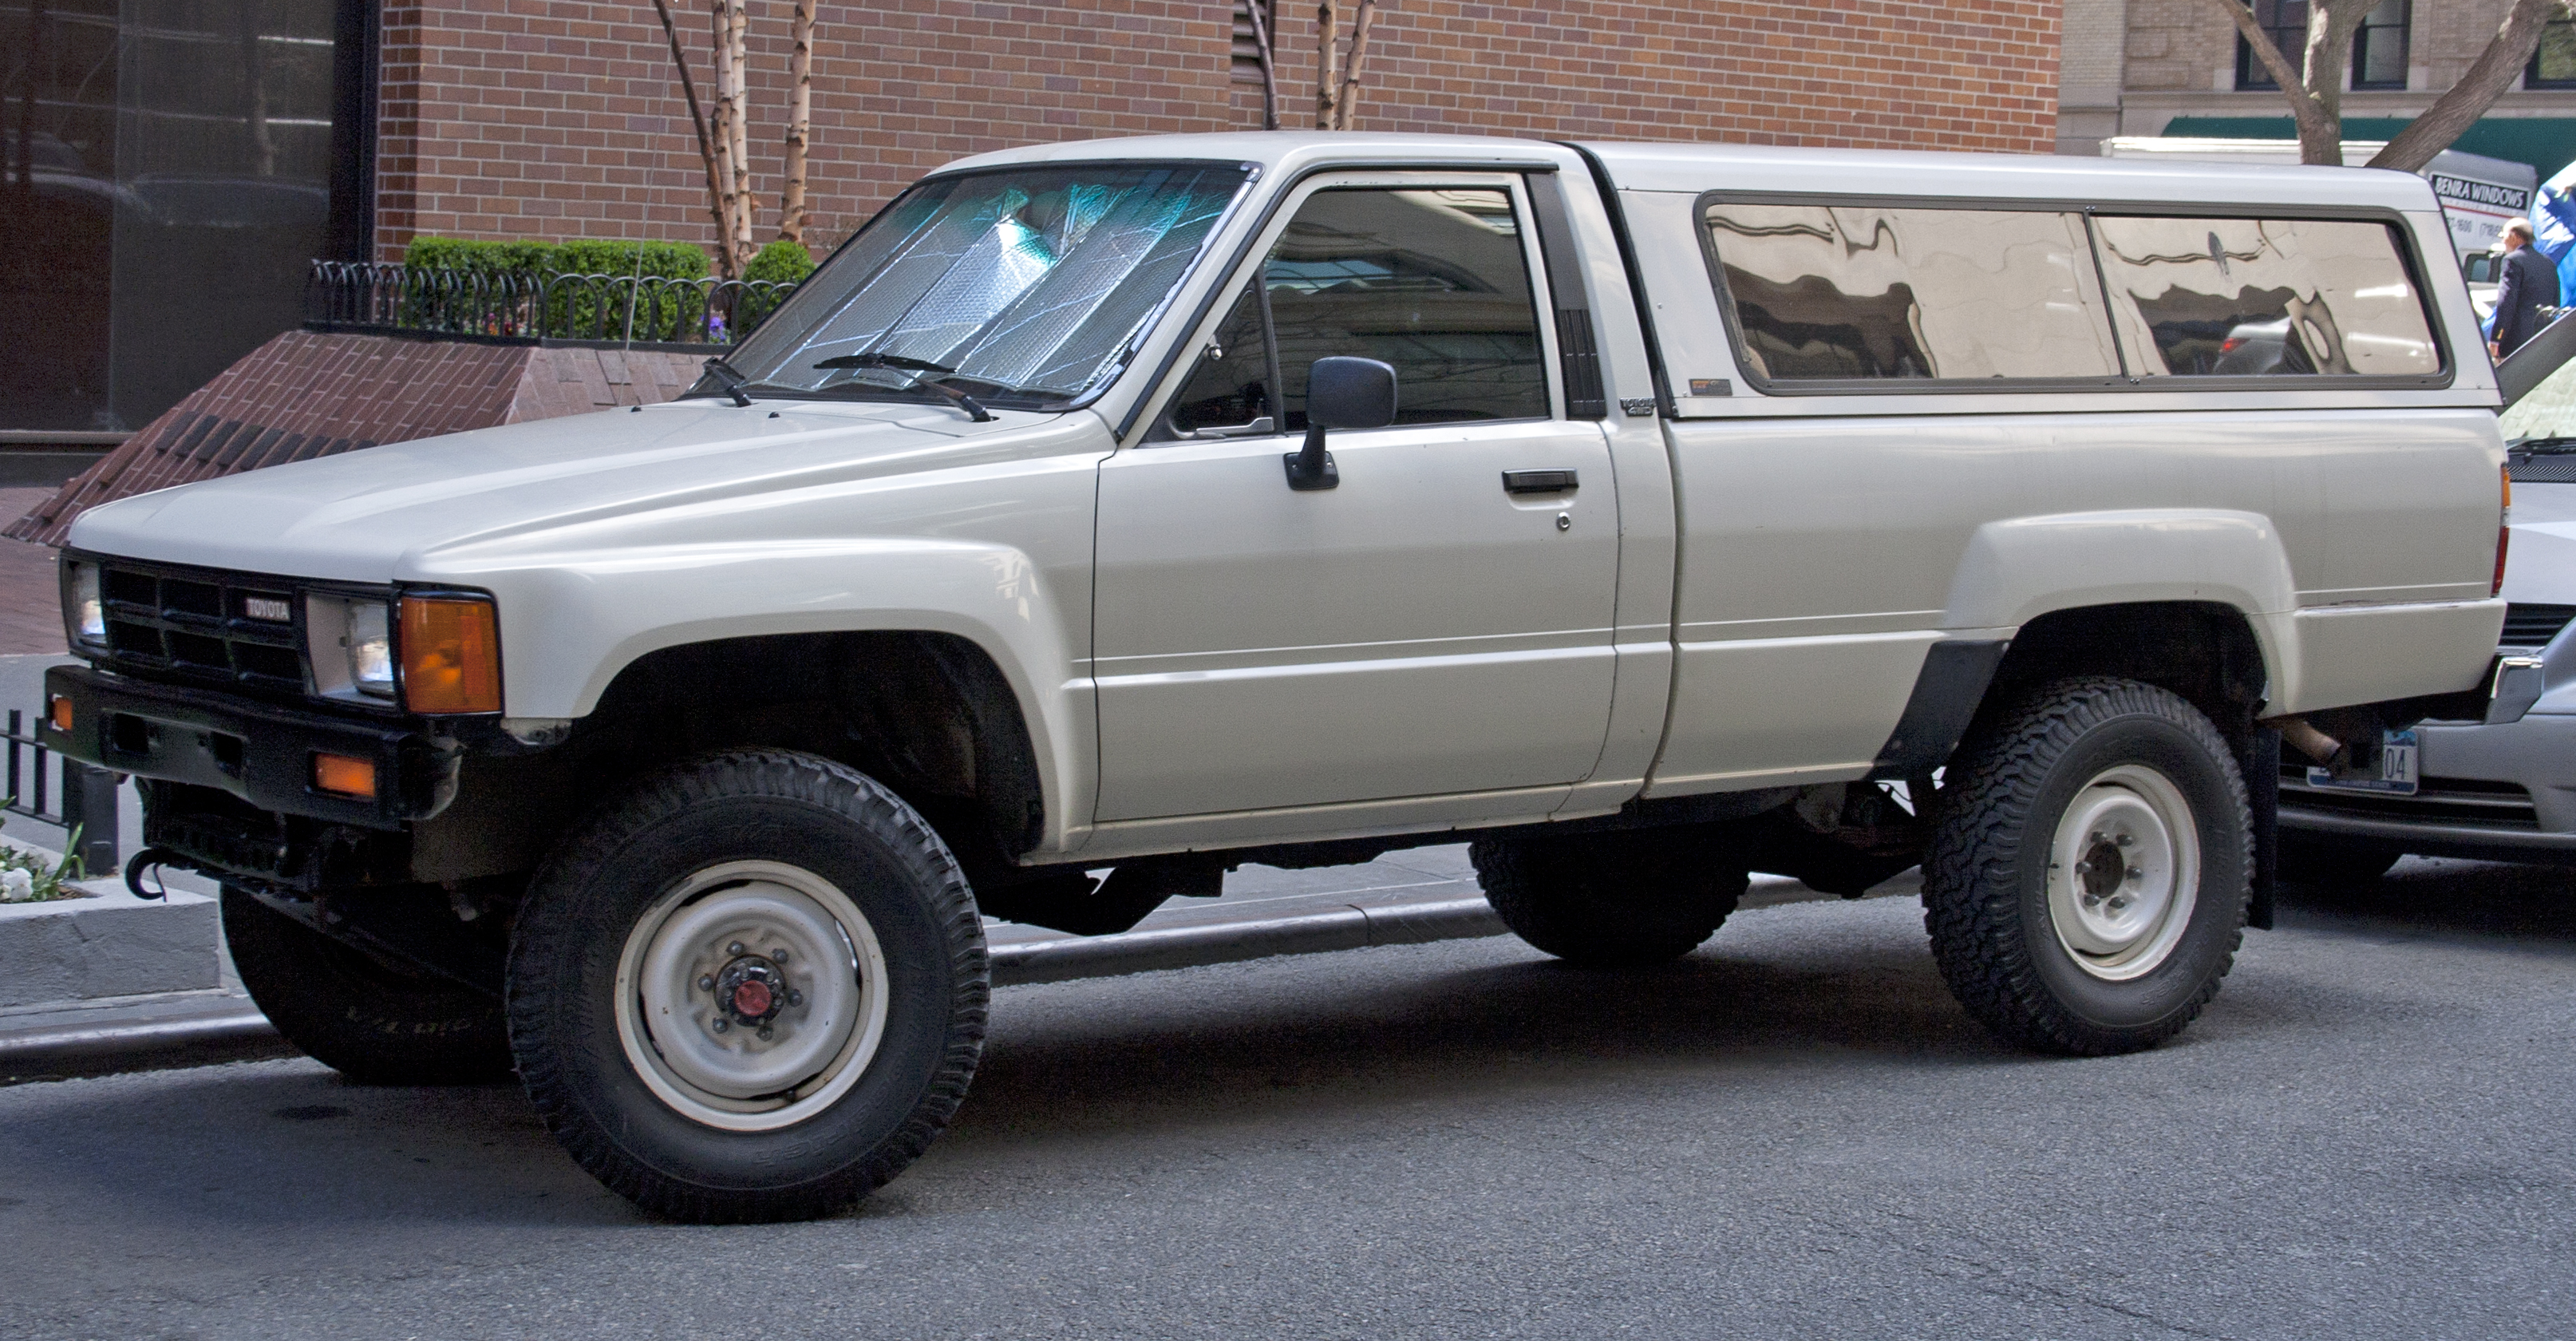 1987 Toyota Truck >> File 1987 Toyota Pickup Long Bed 4wd Jpg Wikimedia Commons